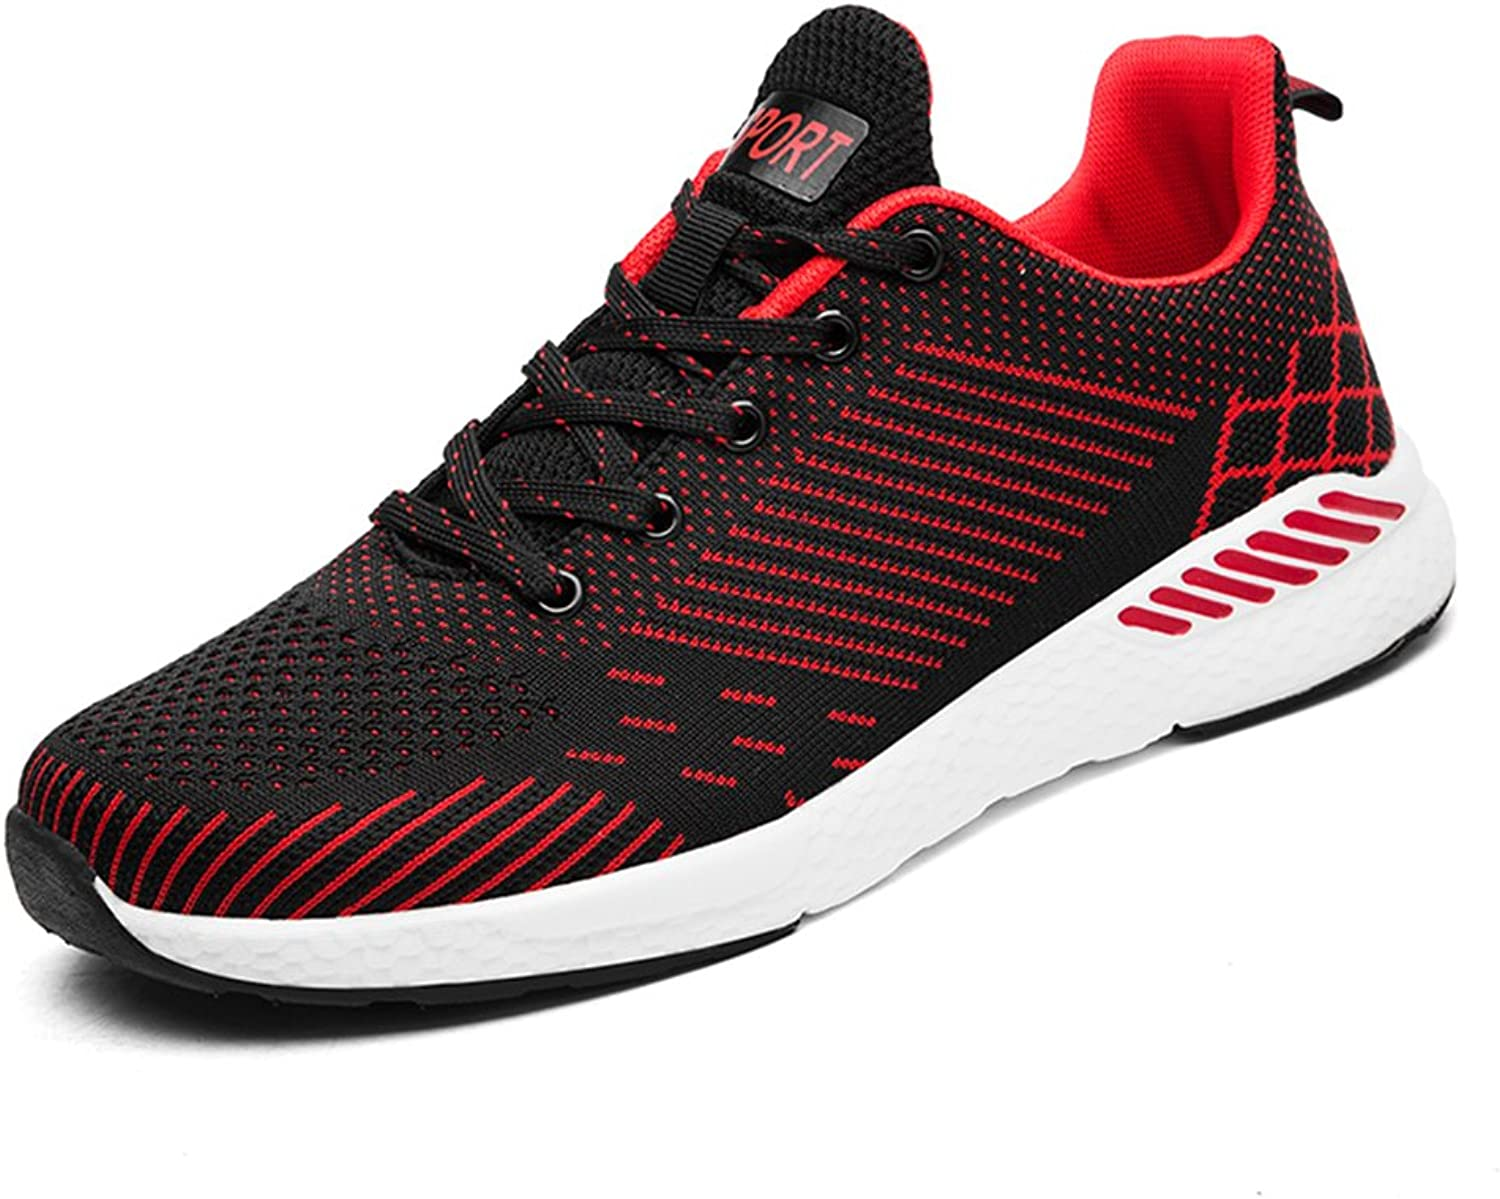 Novel Harp Women Men Running shoes Fashion Breathable Sneakers Mesh Soft Sole Casual Athletic Lightweight